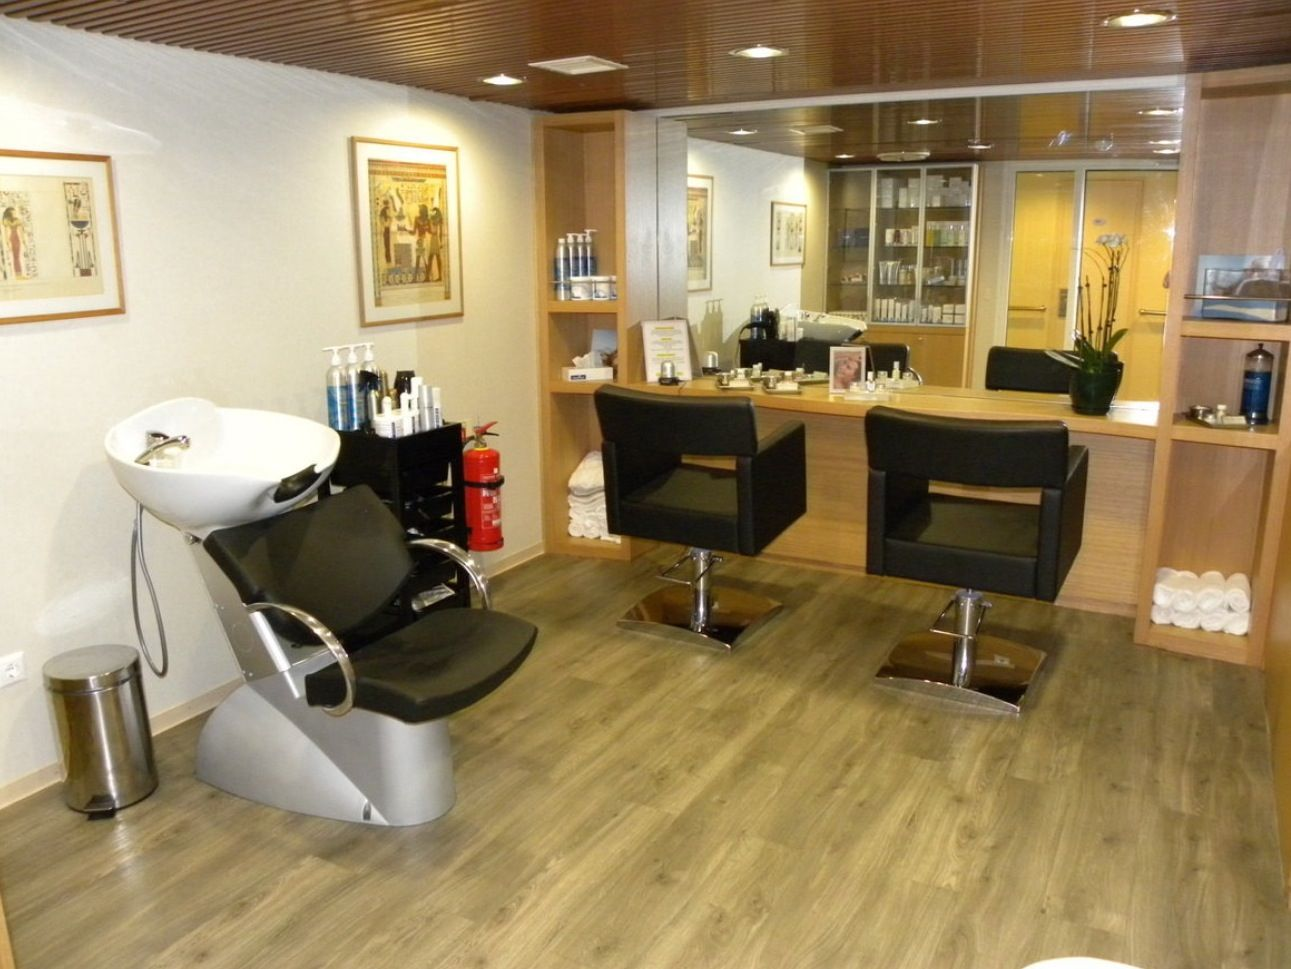 Small salon perfect want want want just for me for Beauty salon designs for interior